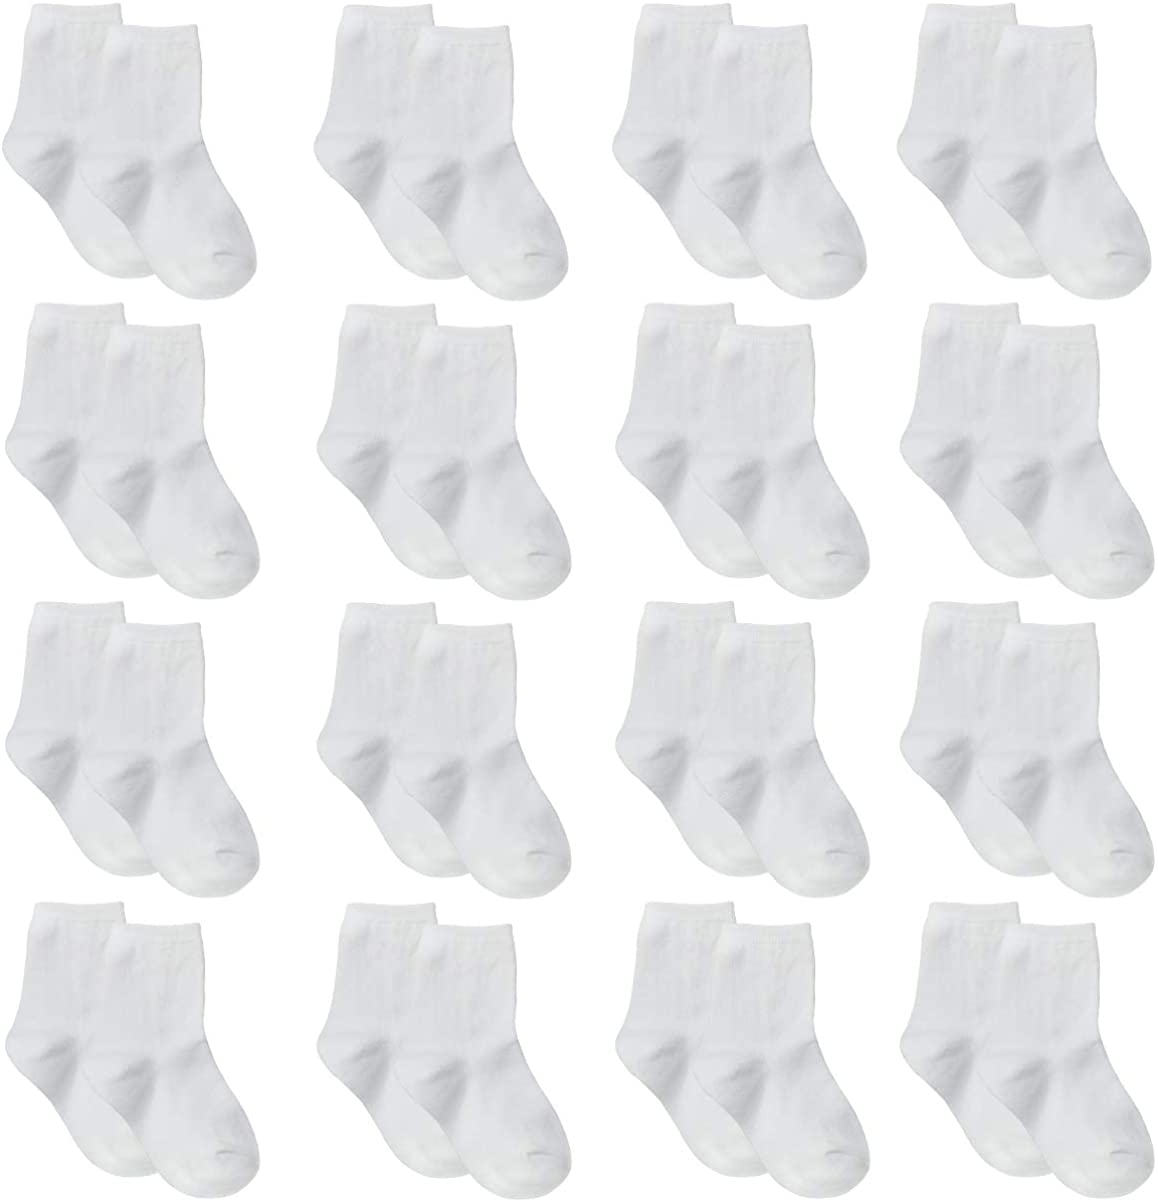 Toddler Baby Socks 16 Pair Cotton Infant Socks For Boys Girls